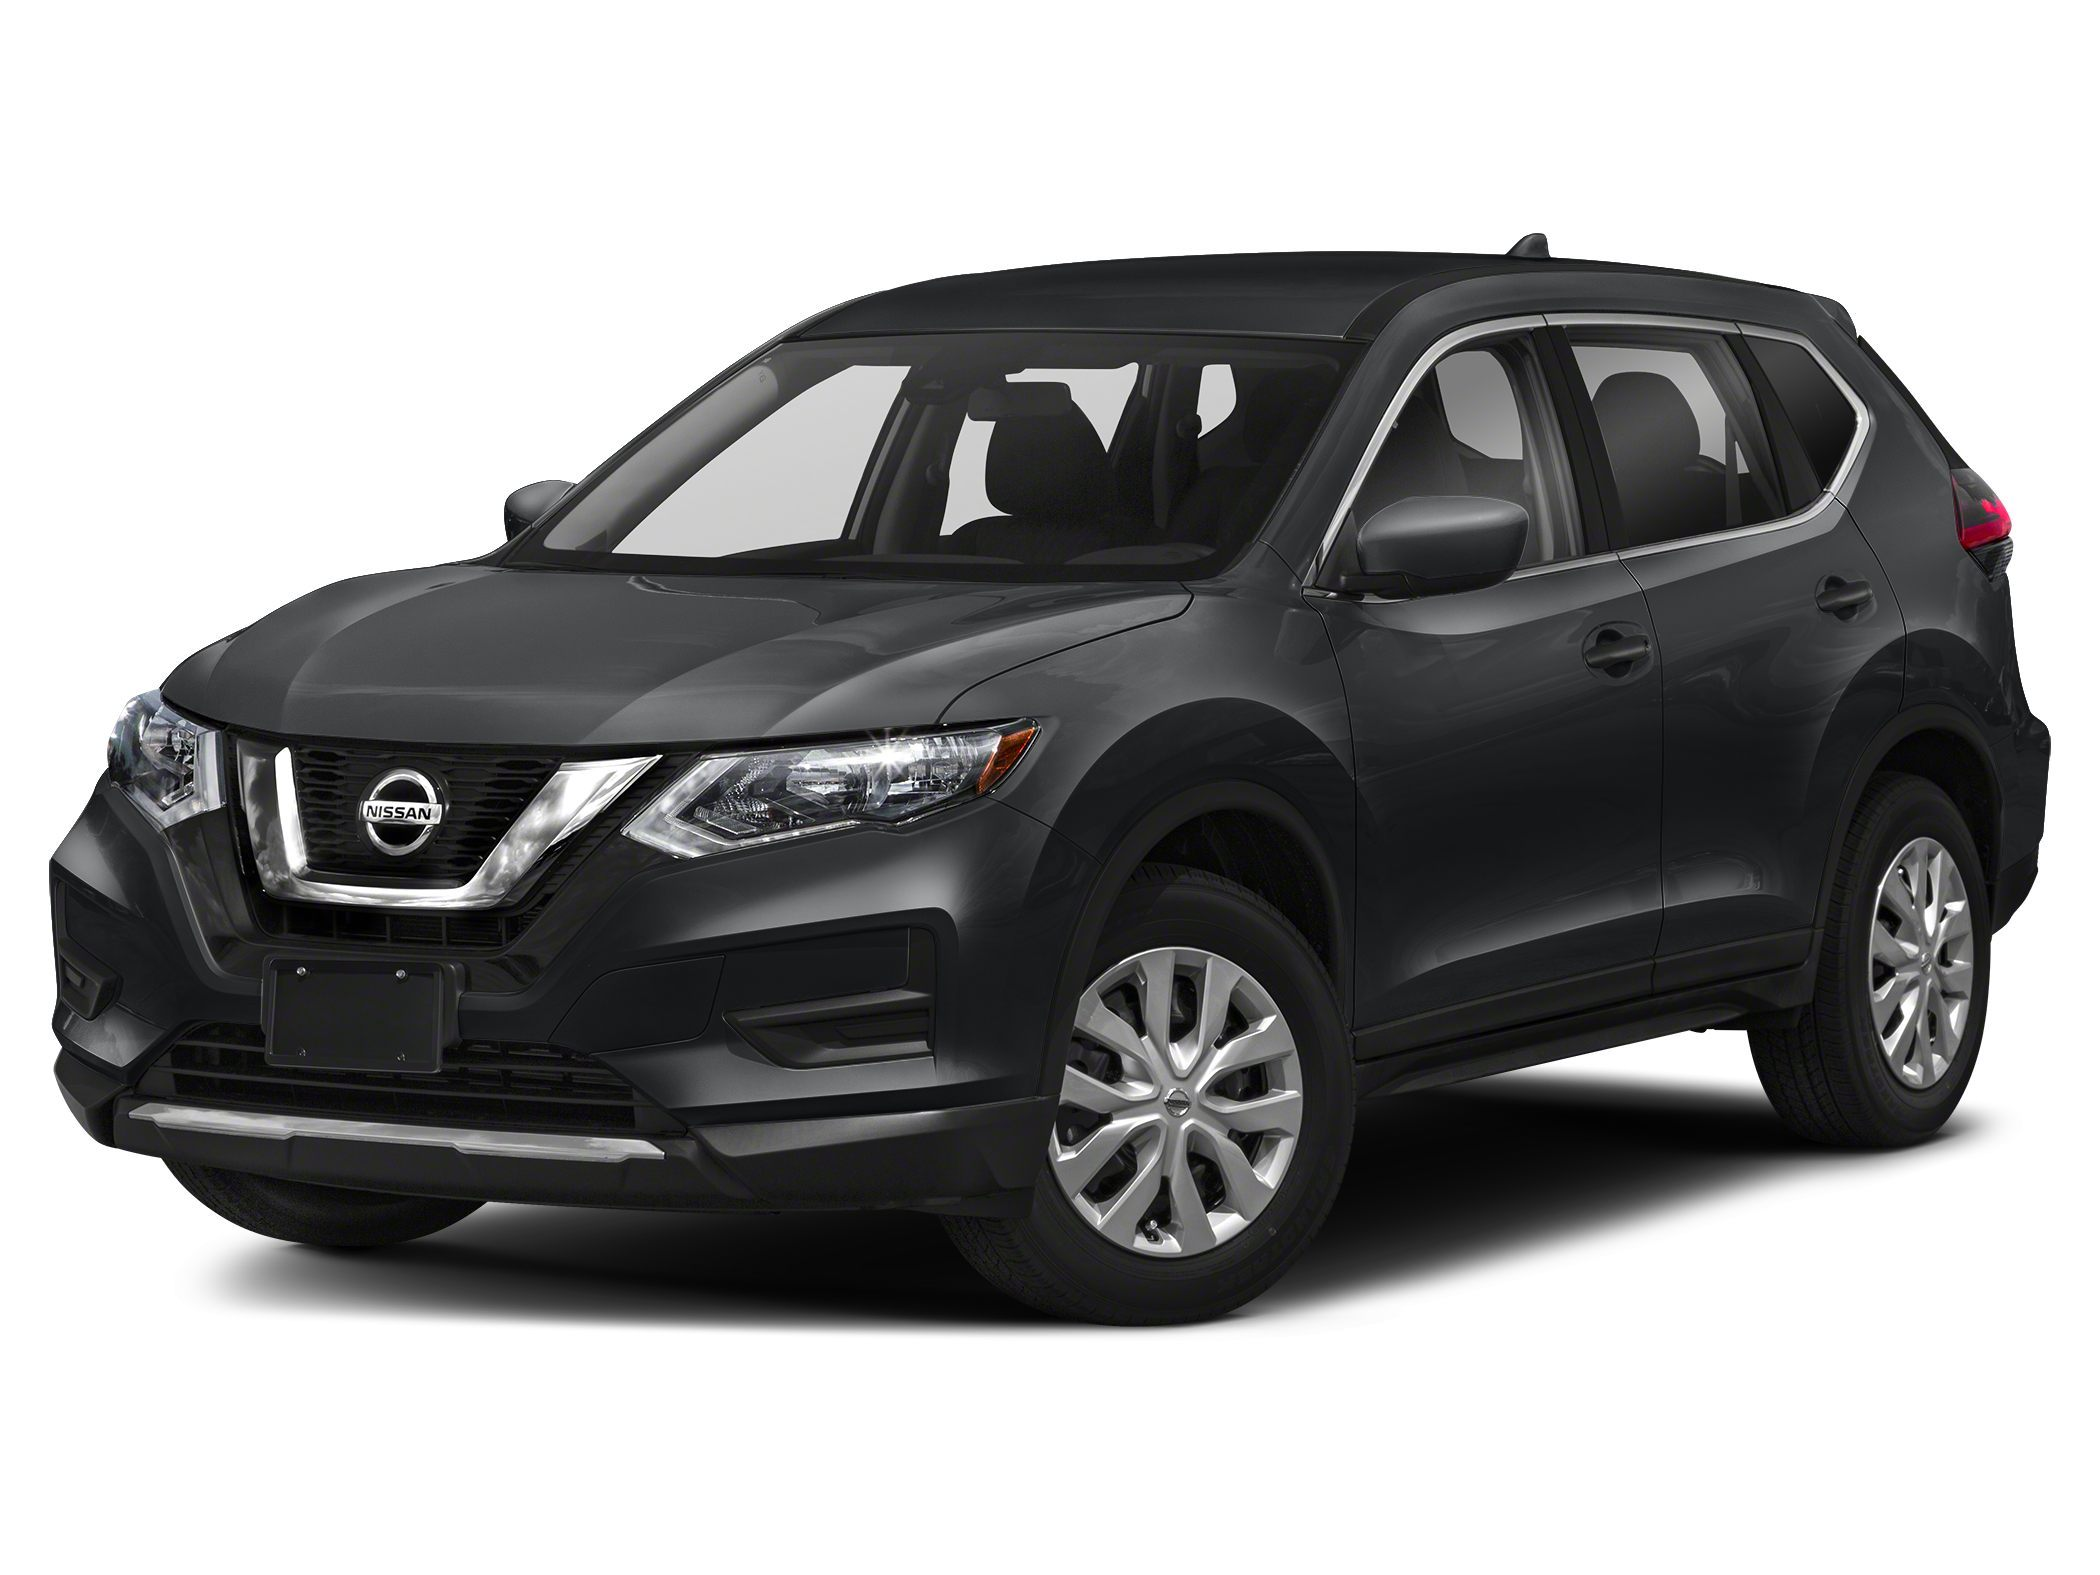 Used 2020 Nissan Rogue For Sale At Boch Nissan Vin Jn8at2mv2lw102547